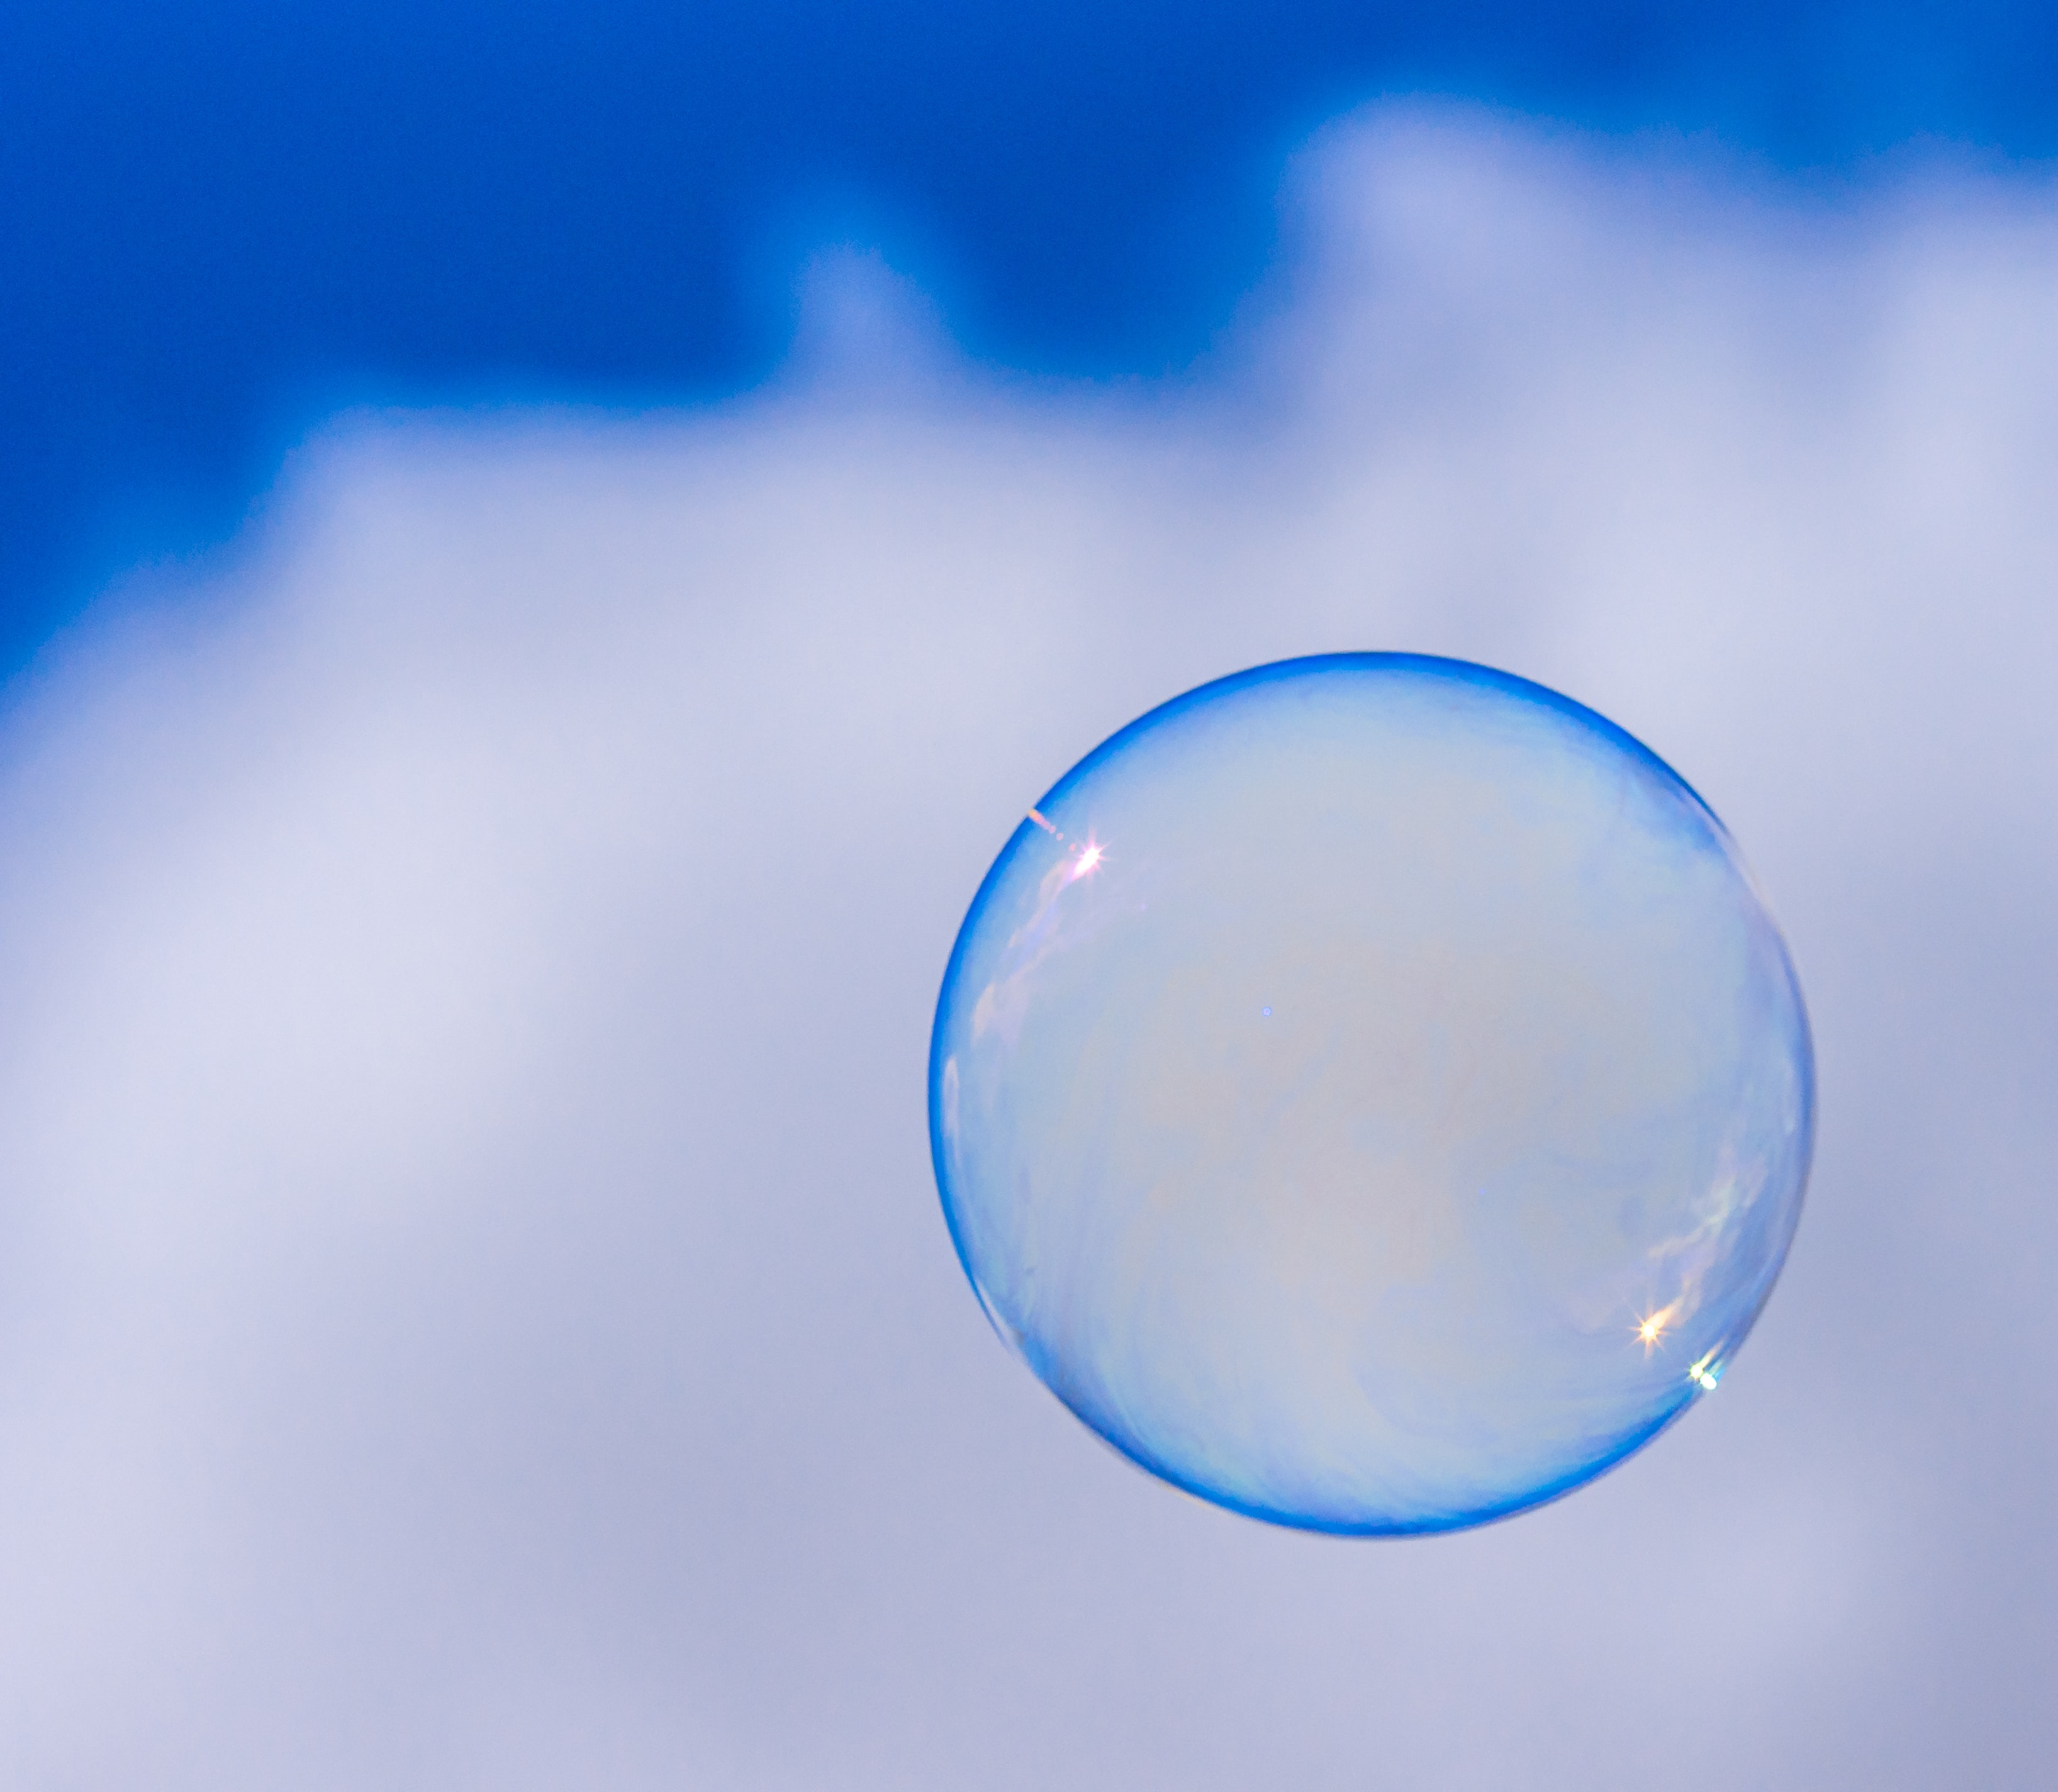 bubble floating through the sky